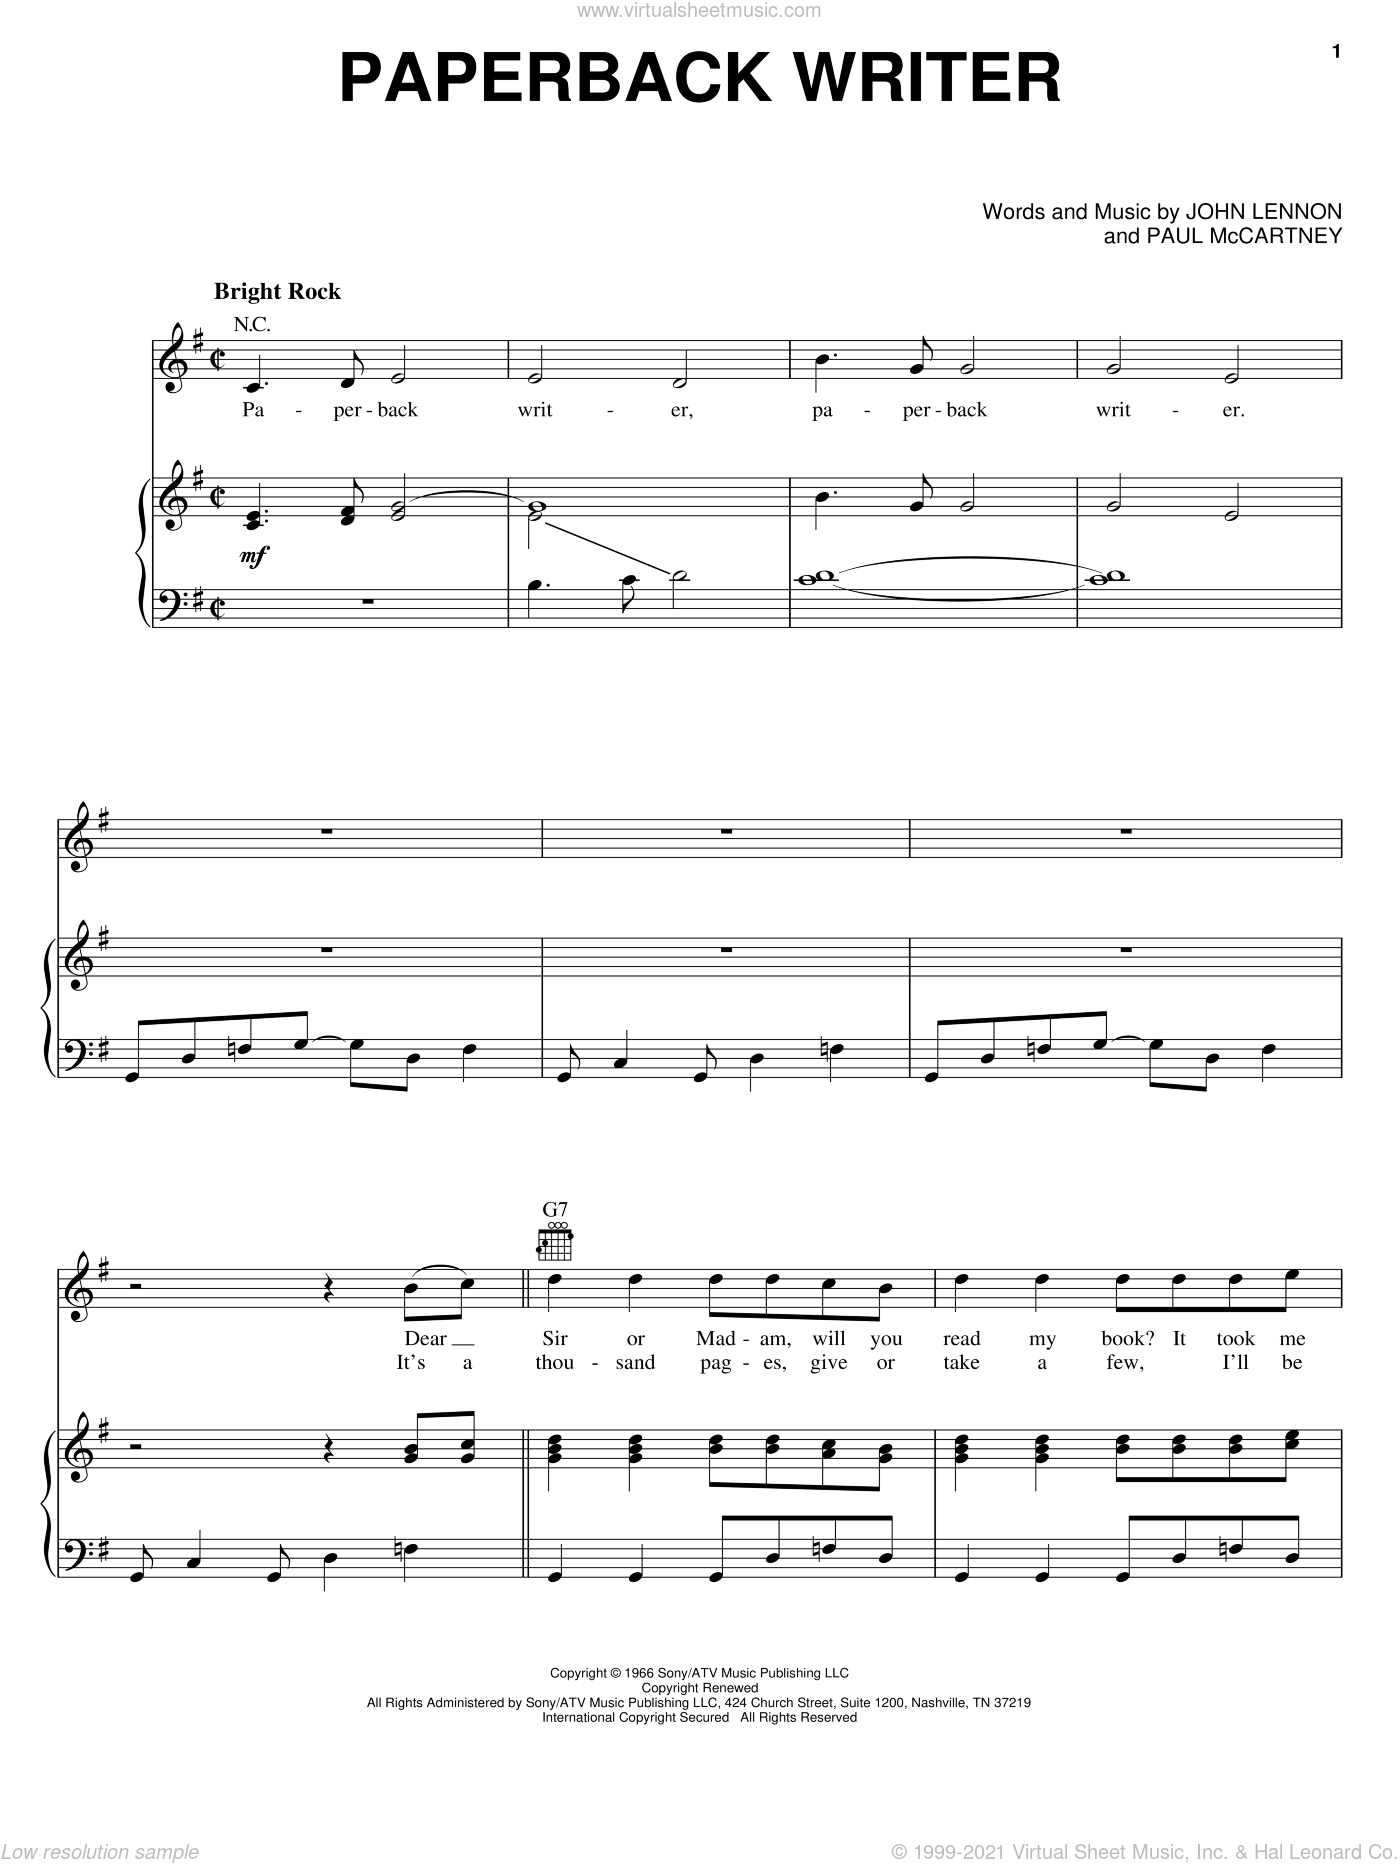 Paperback Writer sheet music for voice, piano or guitar by The Beatles, John Lennon and Paul McCartney, intermediate skill level